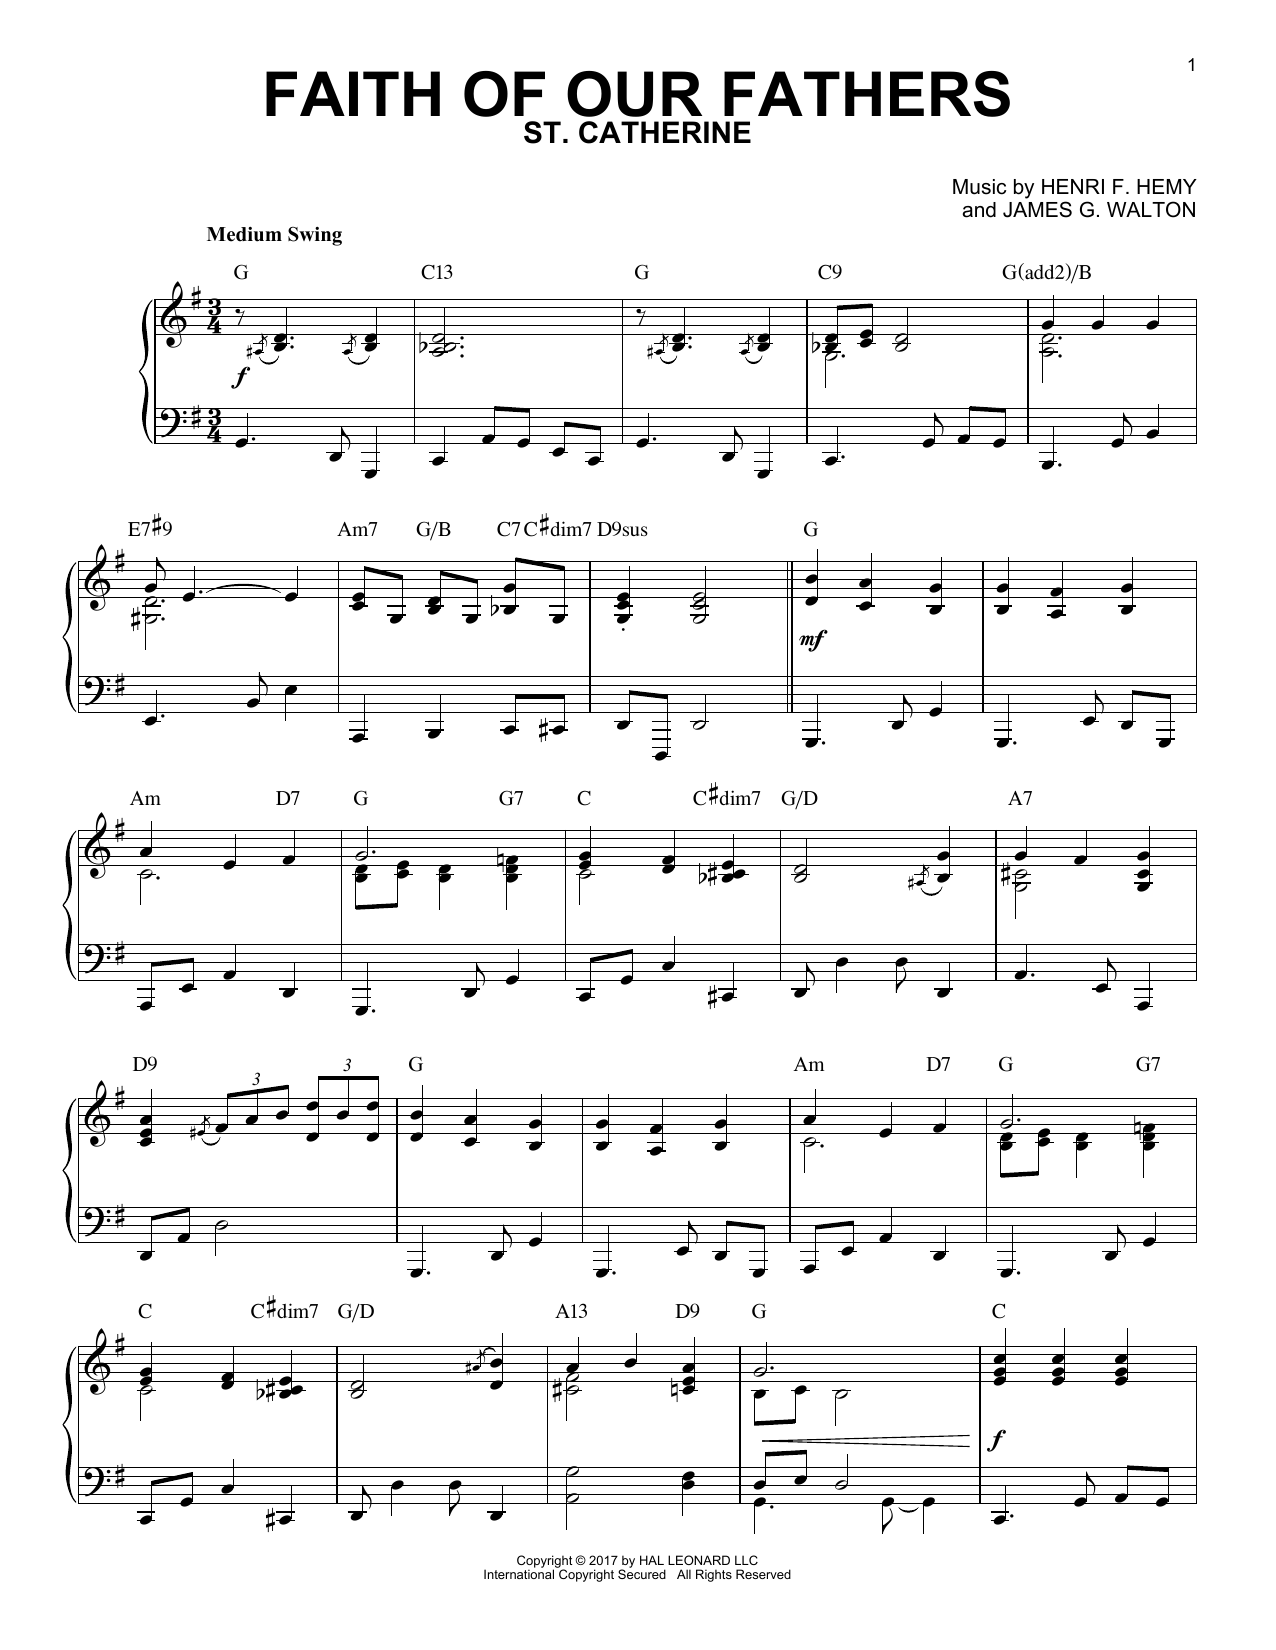 Download Henri F. Hemy 'Faith Of Our Fathers' Digital Sheet Music Notes & Chords and start playing in minutes